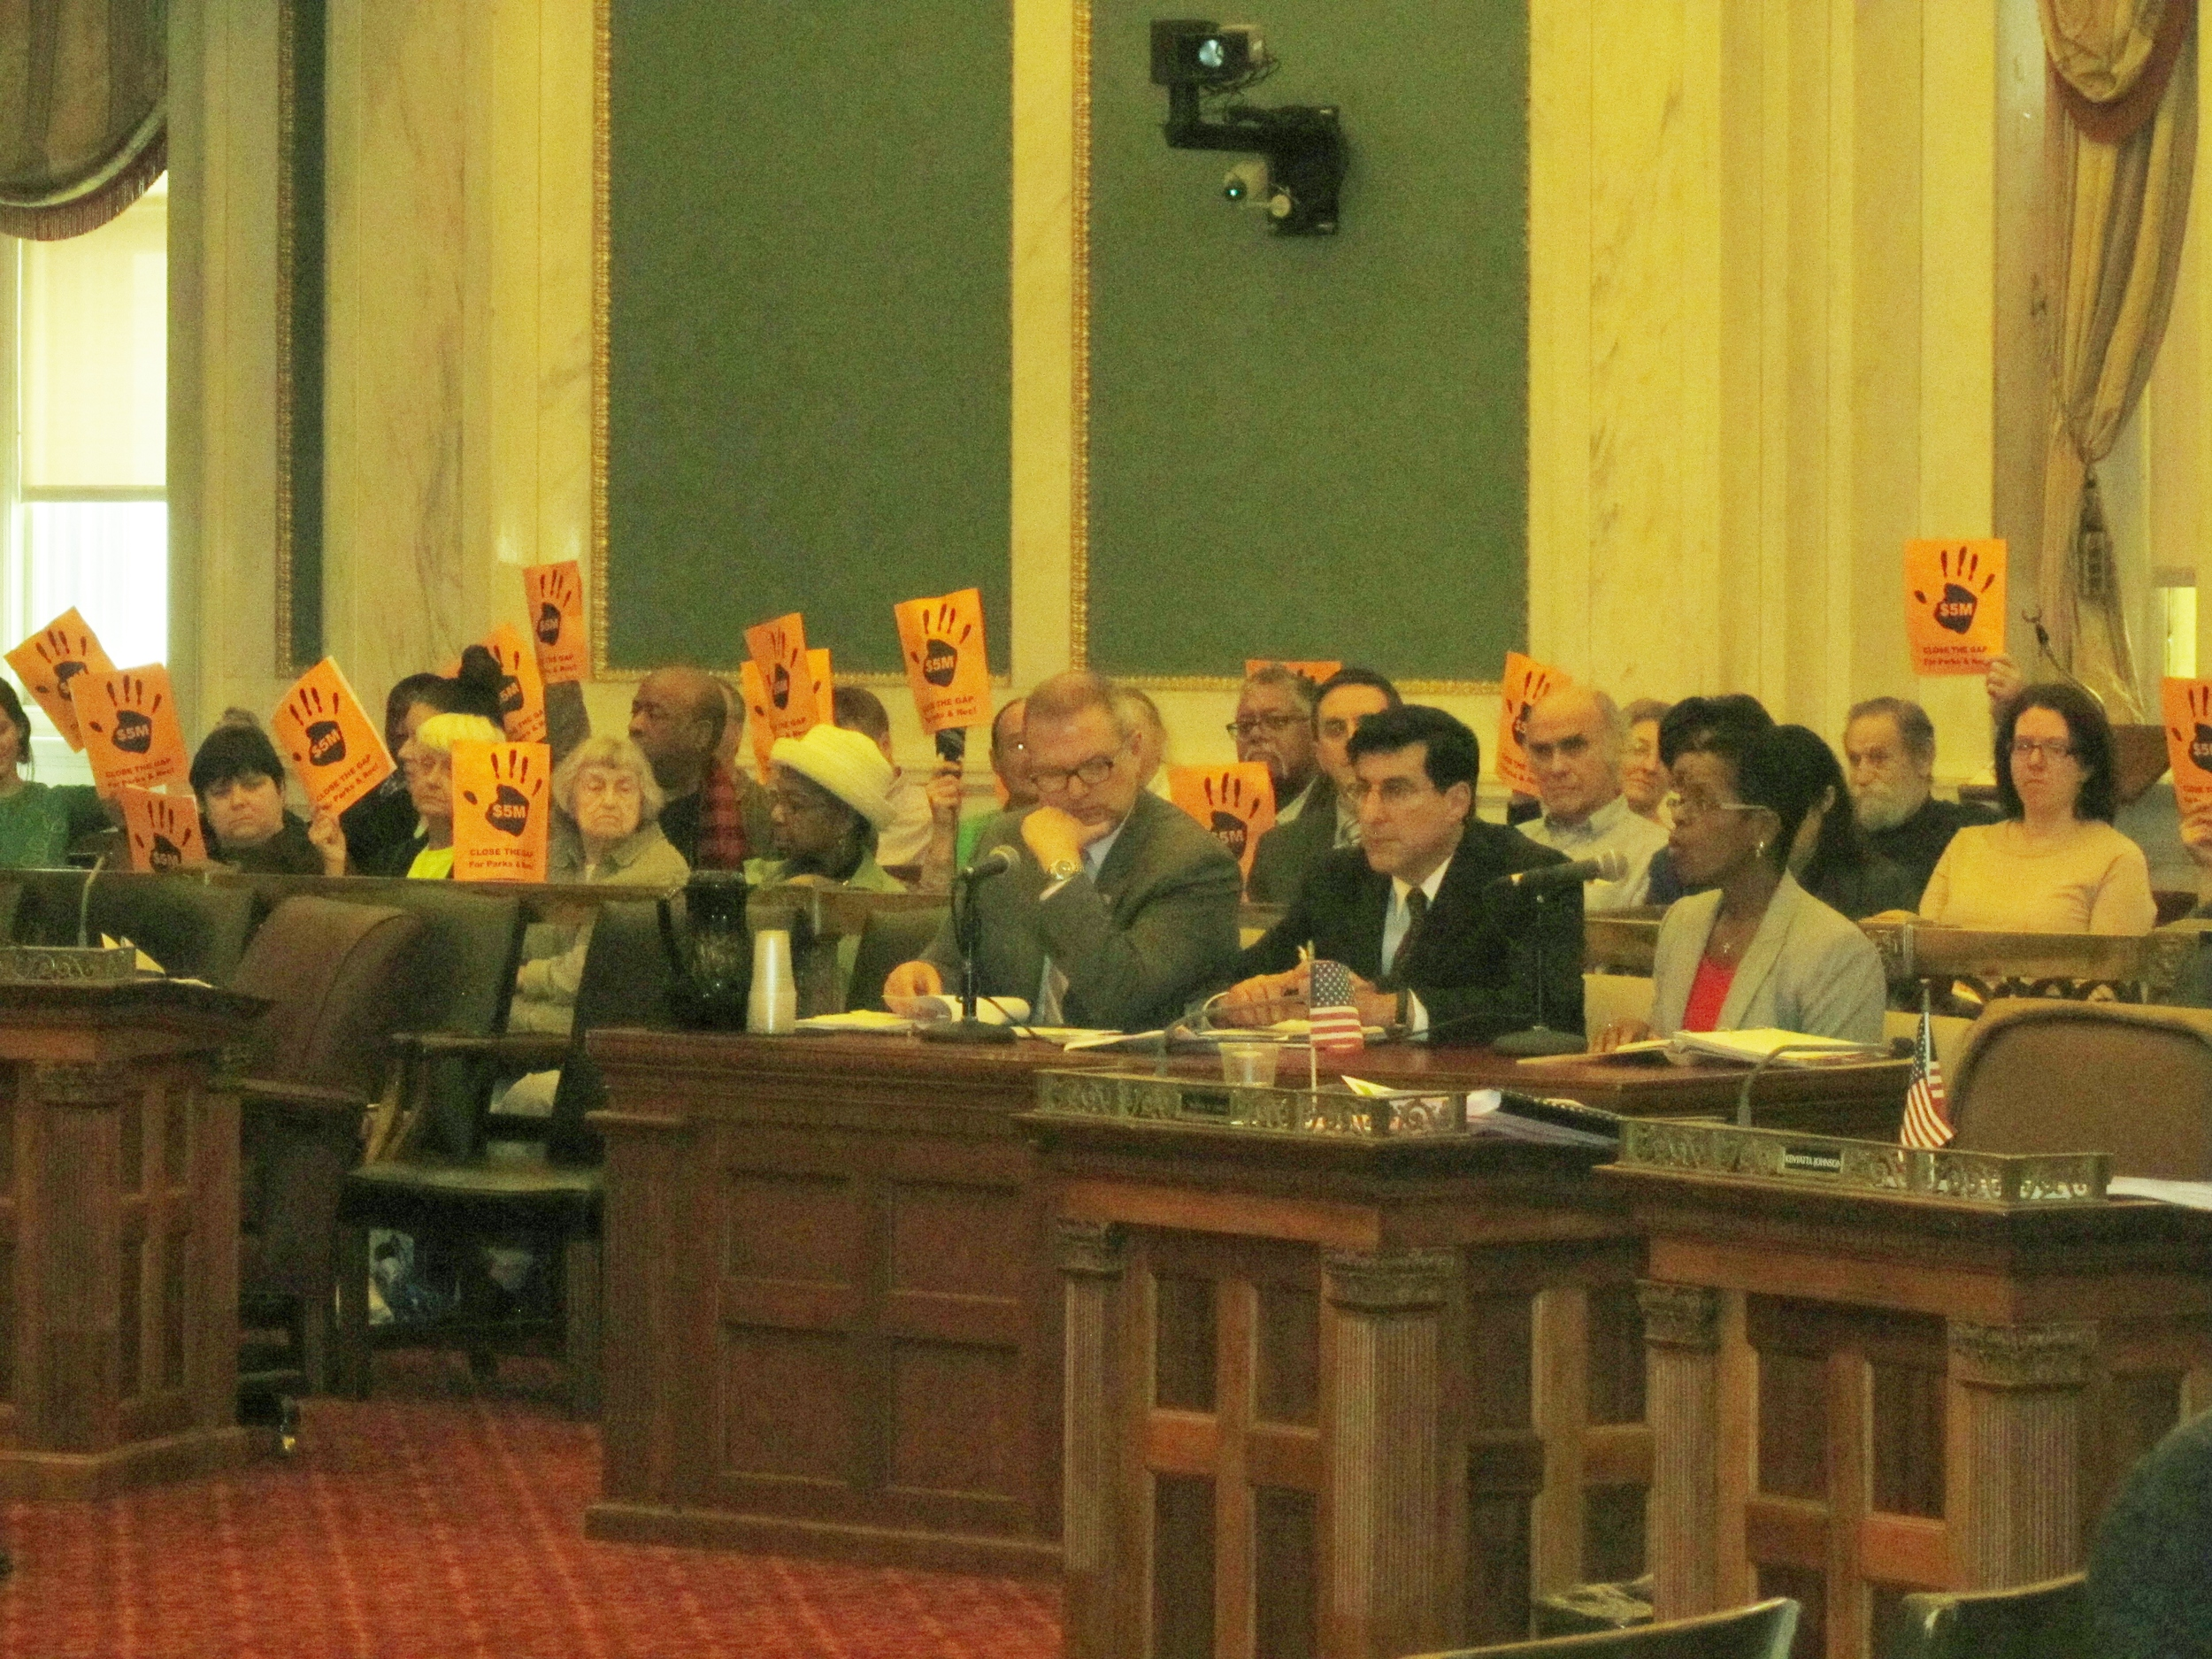 Michael DiBerardinis, Mark Focht, and Susan Slawson speak at a City Council Budget Hearing